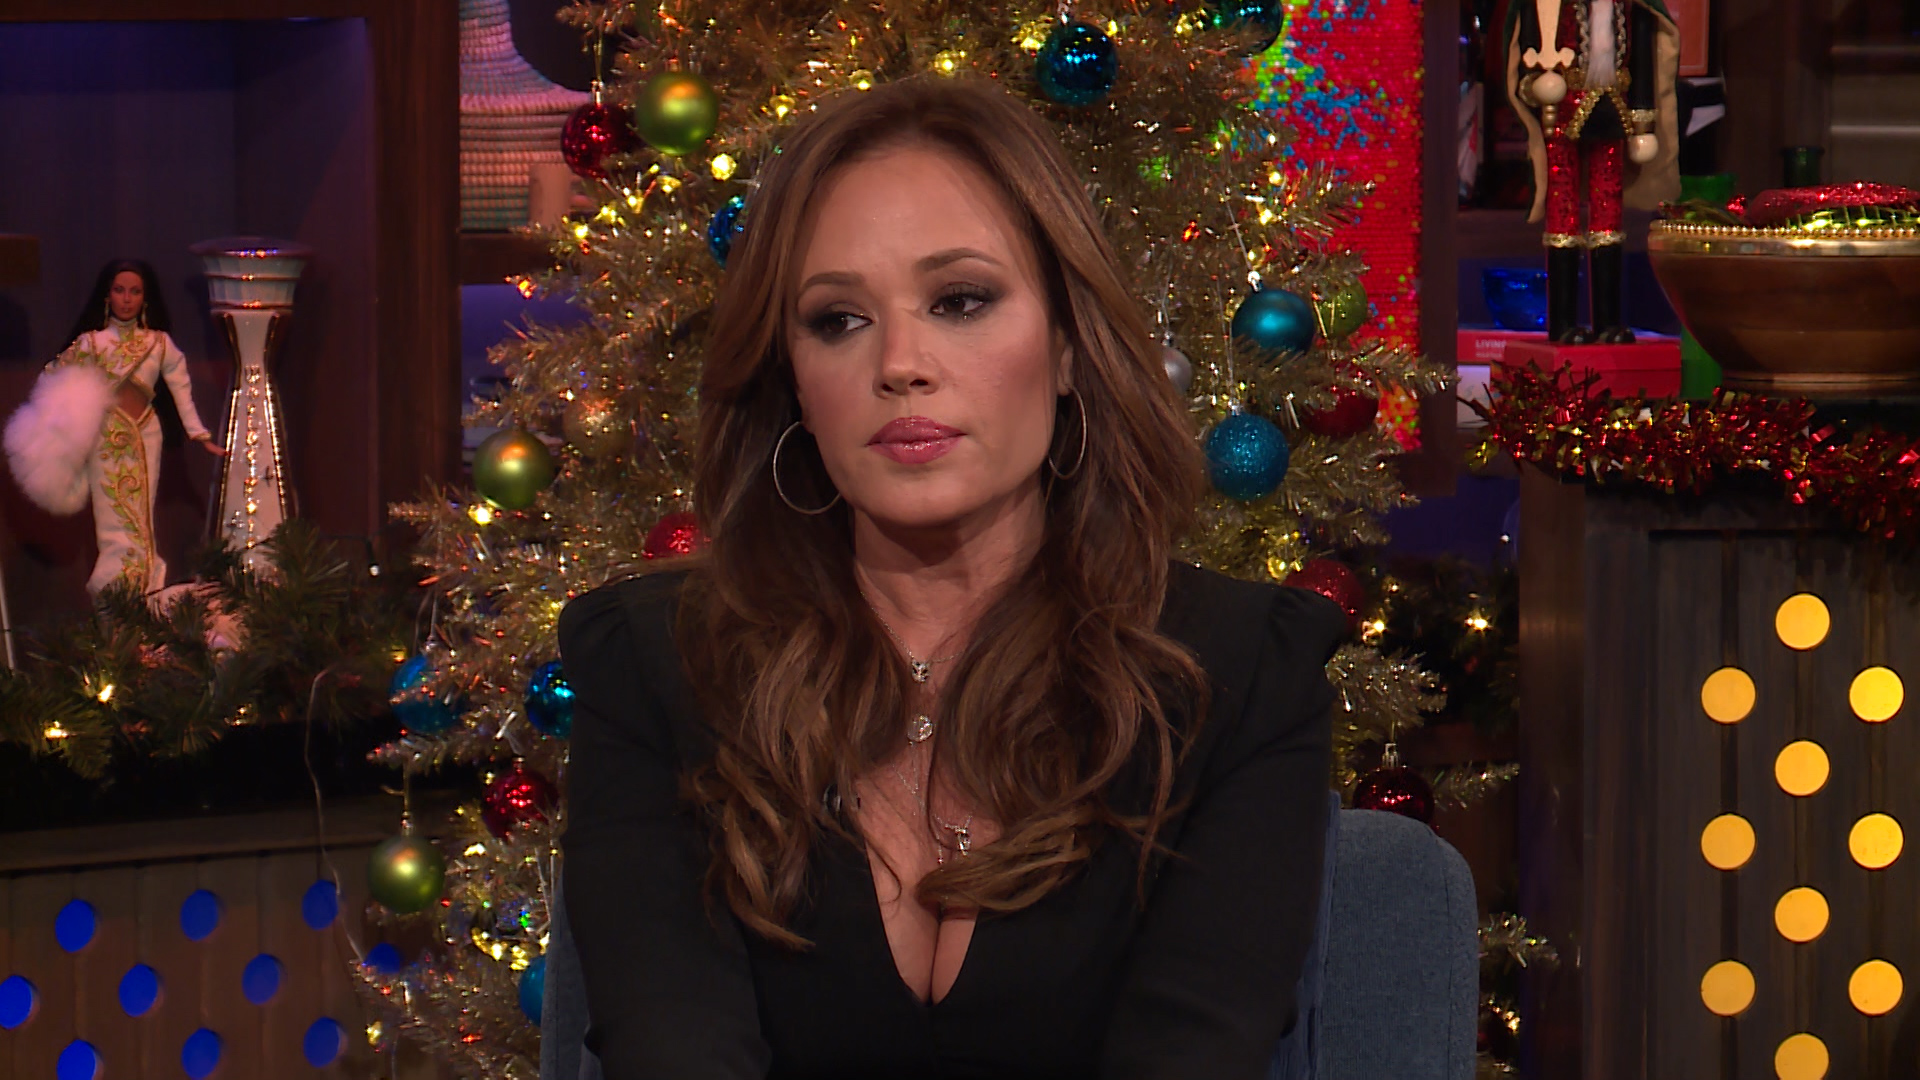 Leah Remini Says Scientology Celebs Shun Her